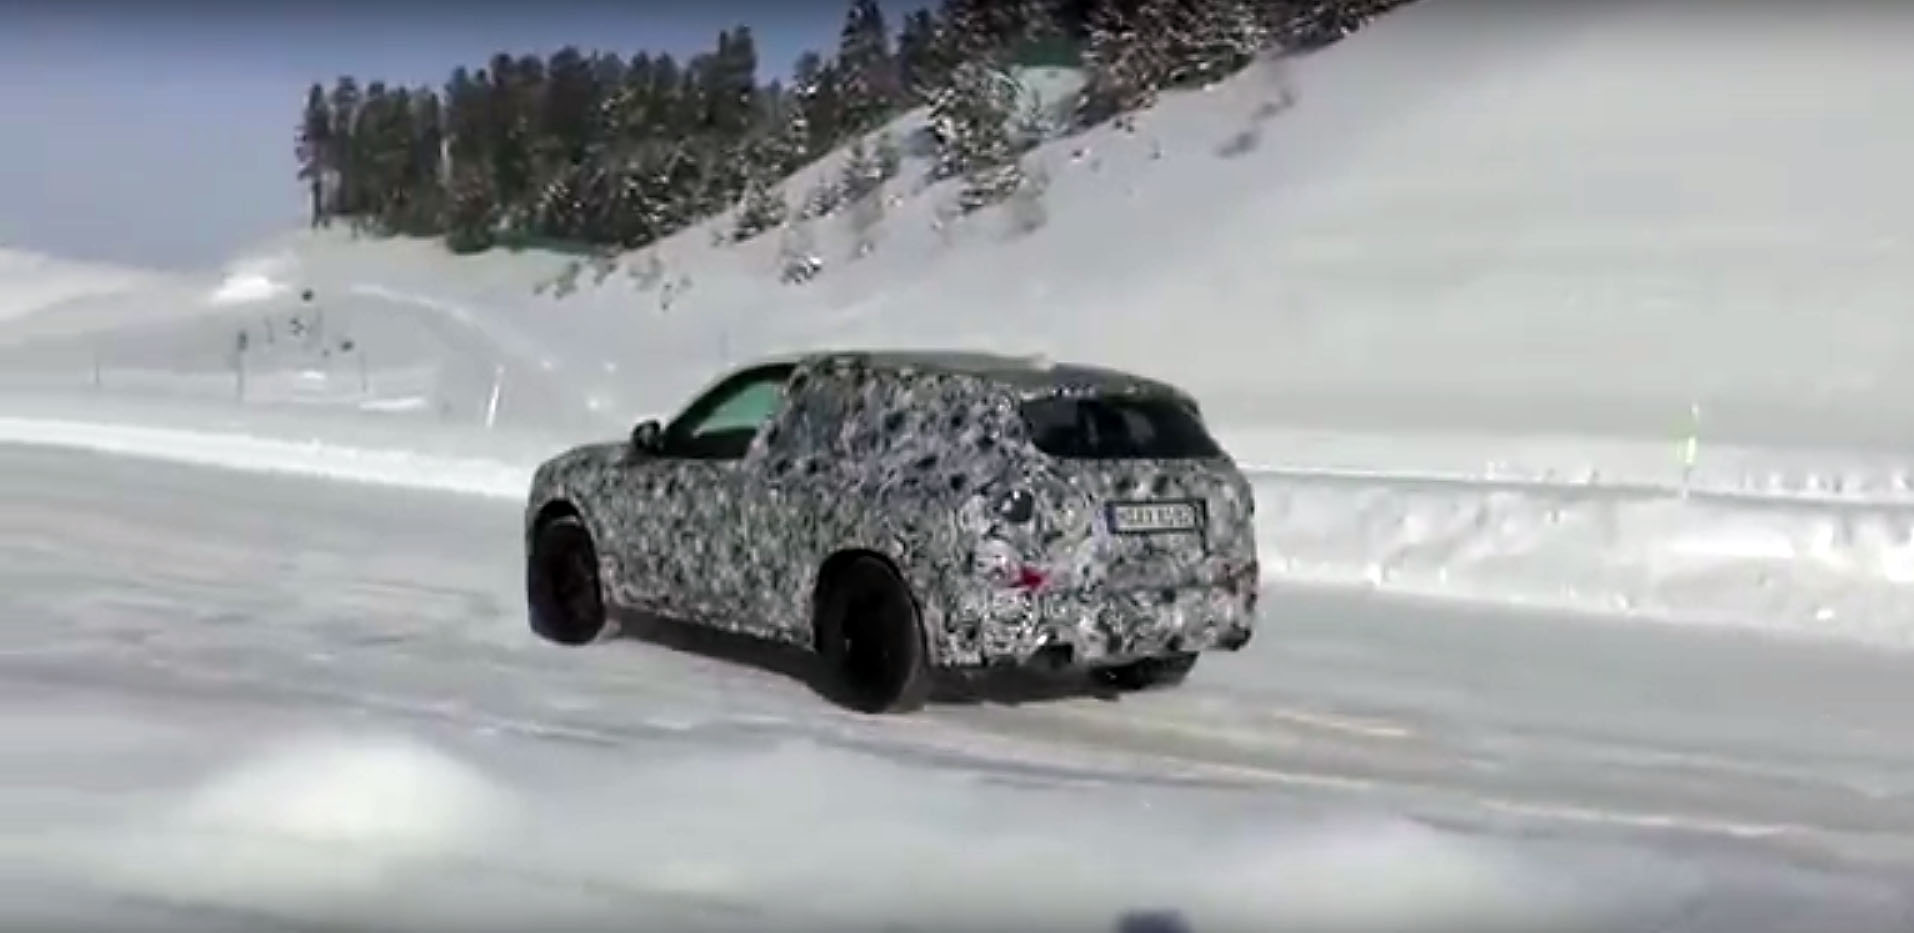 2018 Bmw X3 Drifts A Little In The Snow Looks More Of An